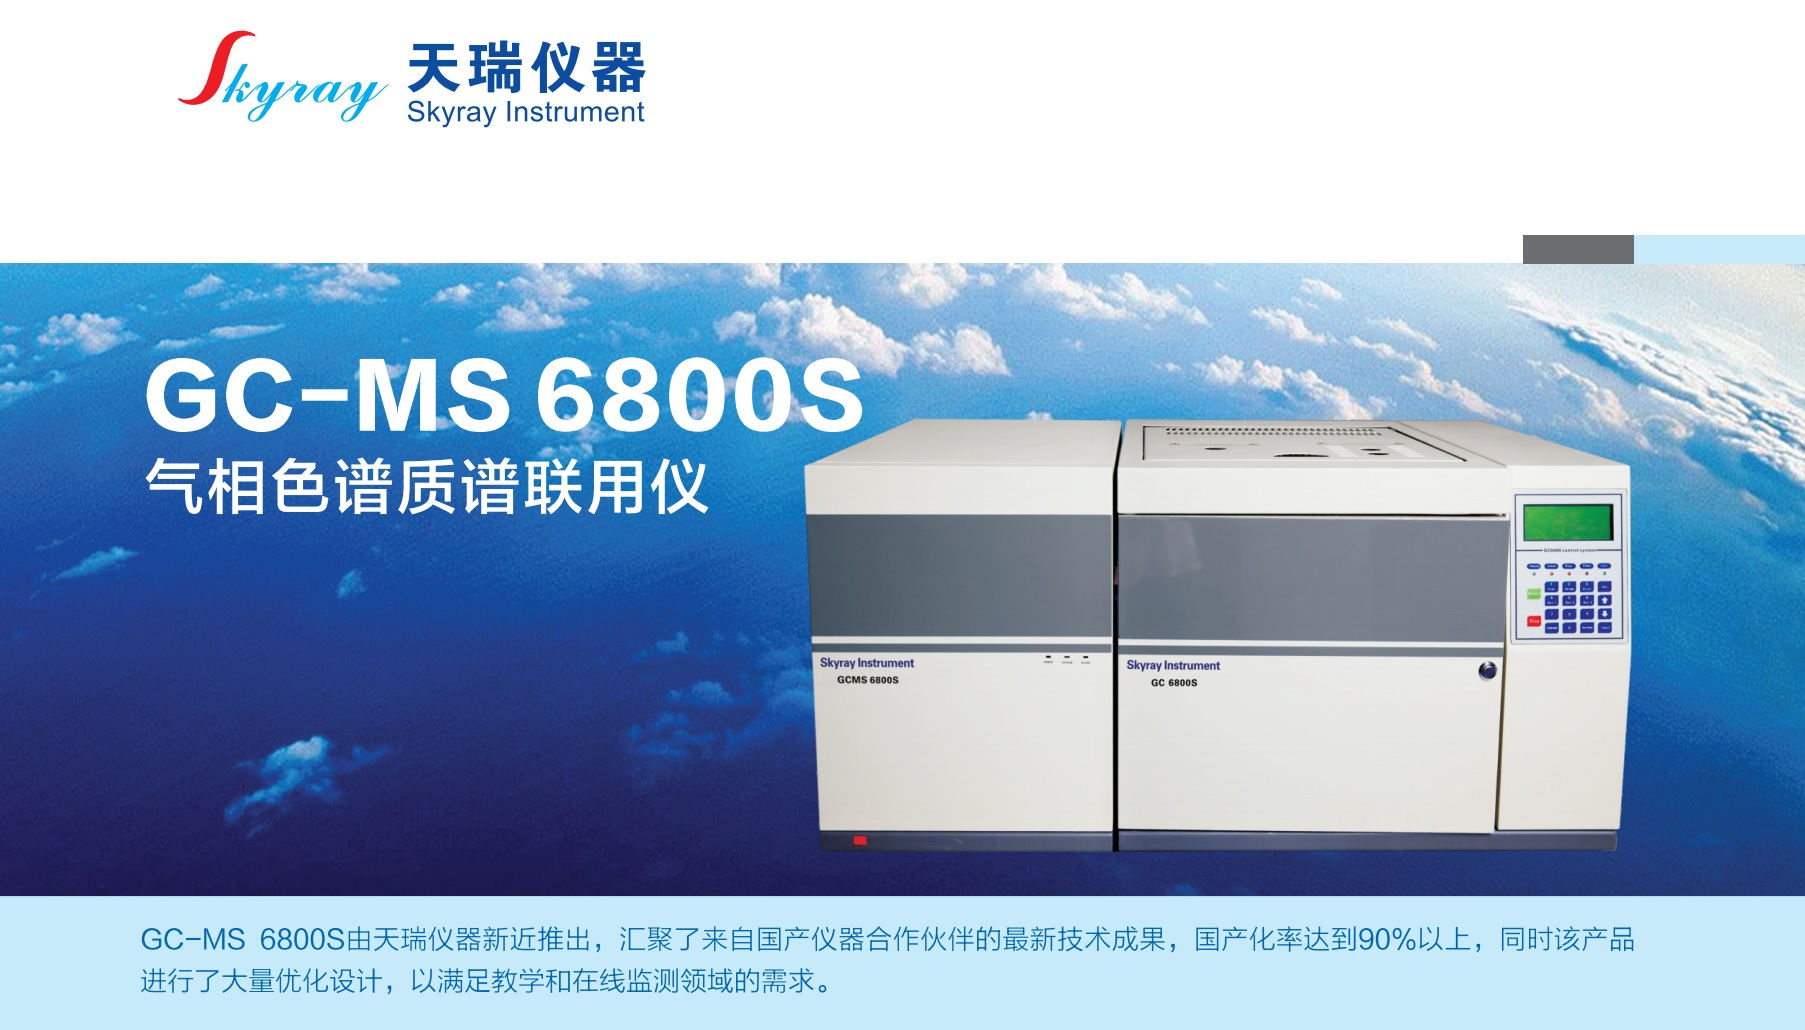 Jiangsu Skyray Instrument Co., Ltd.-GC-MS6800S